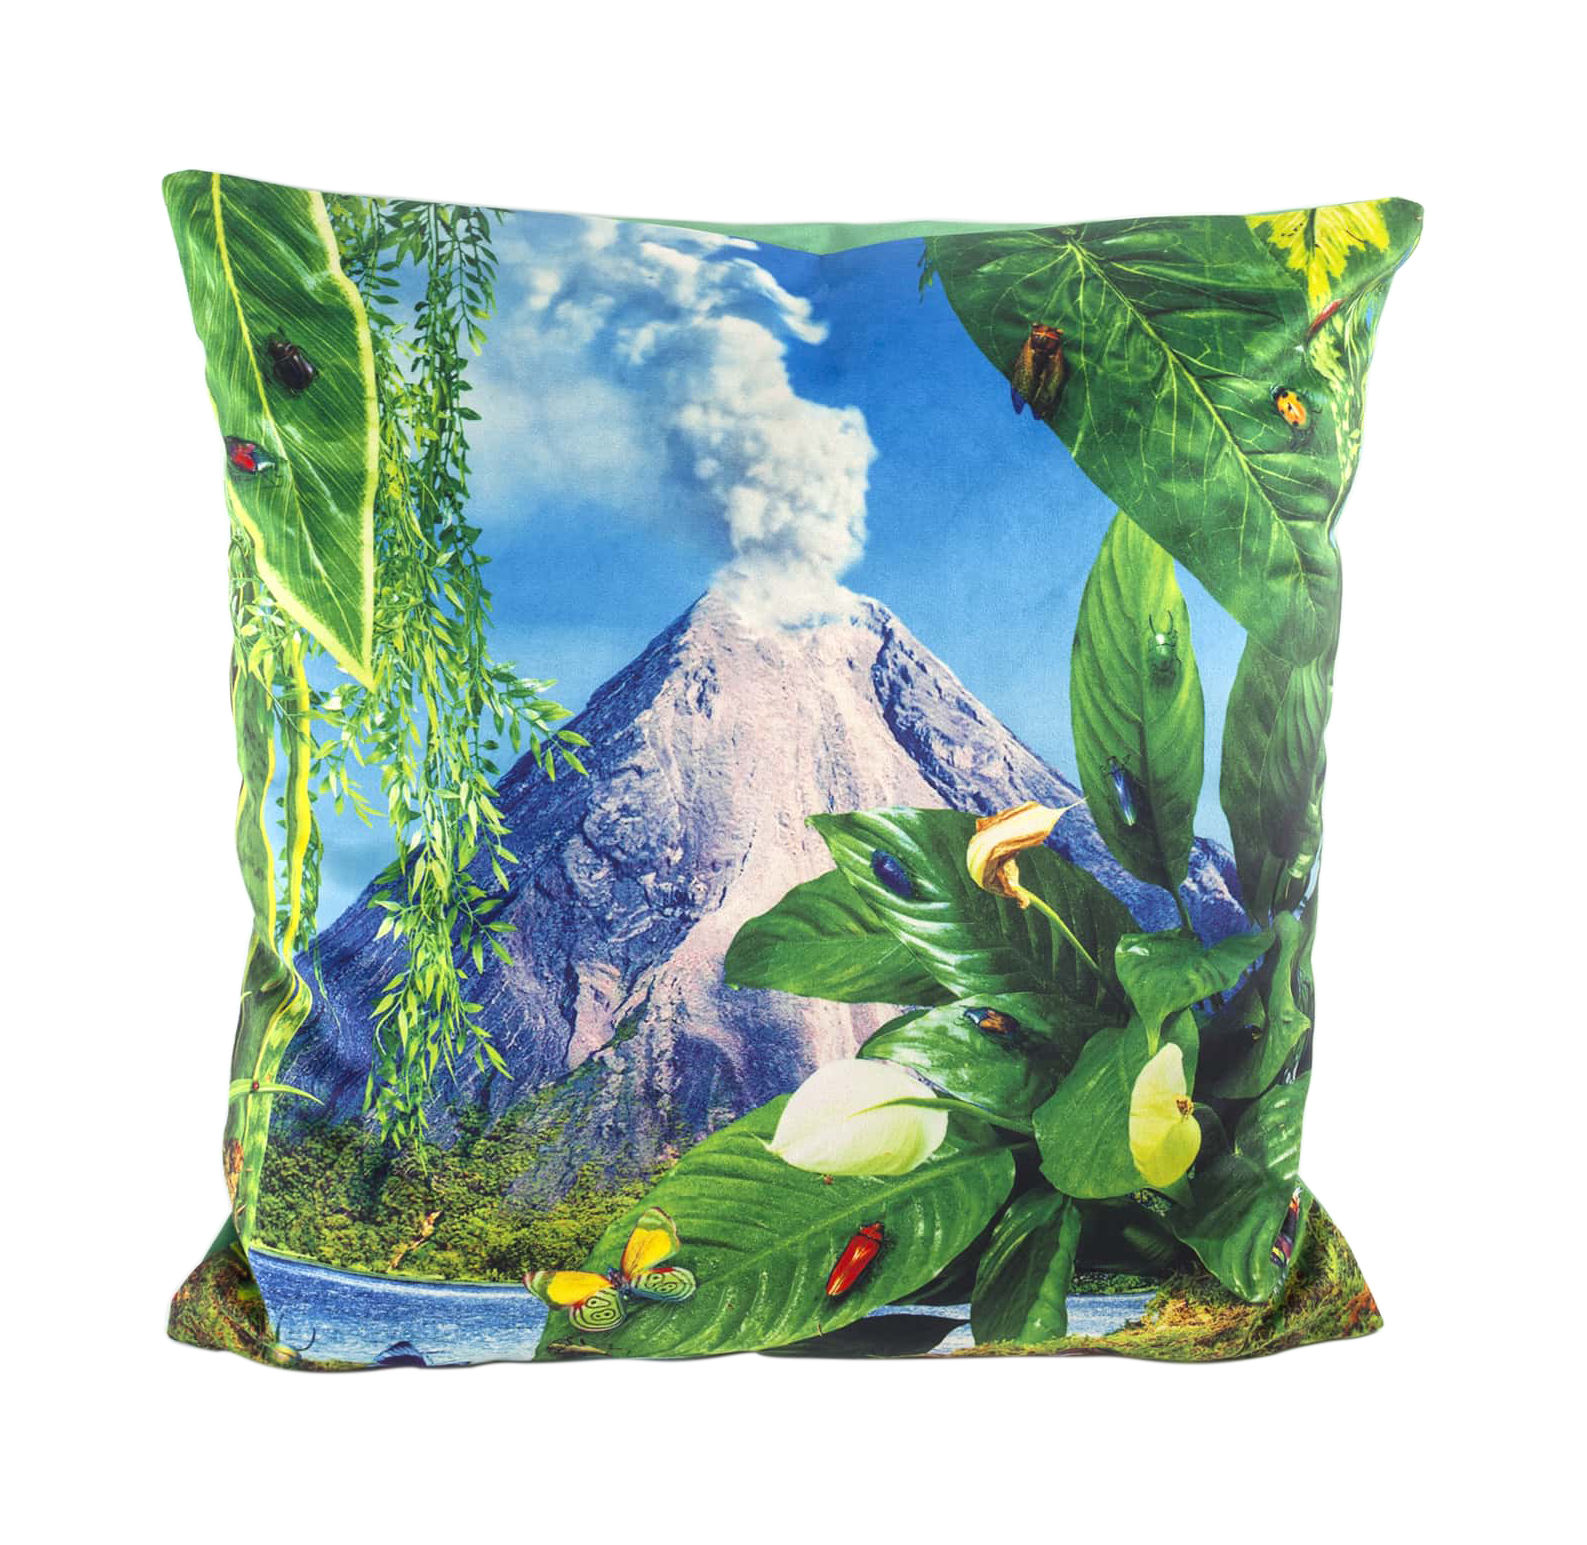 Déco - Coussins - Coussin Toiletpaper / Volcan - 50 x 50 cm - Seletti - Volcan / Vert - Plume, Tissu polyester